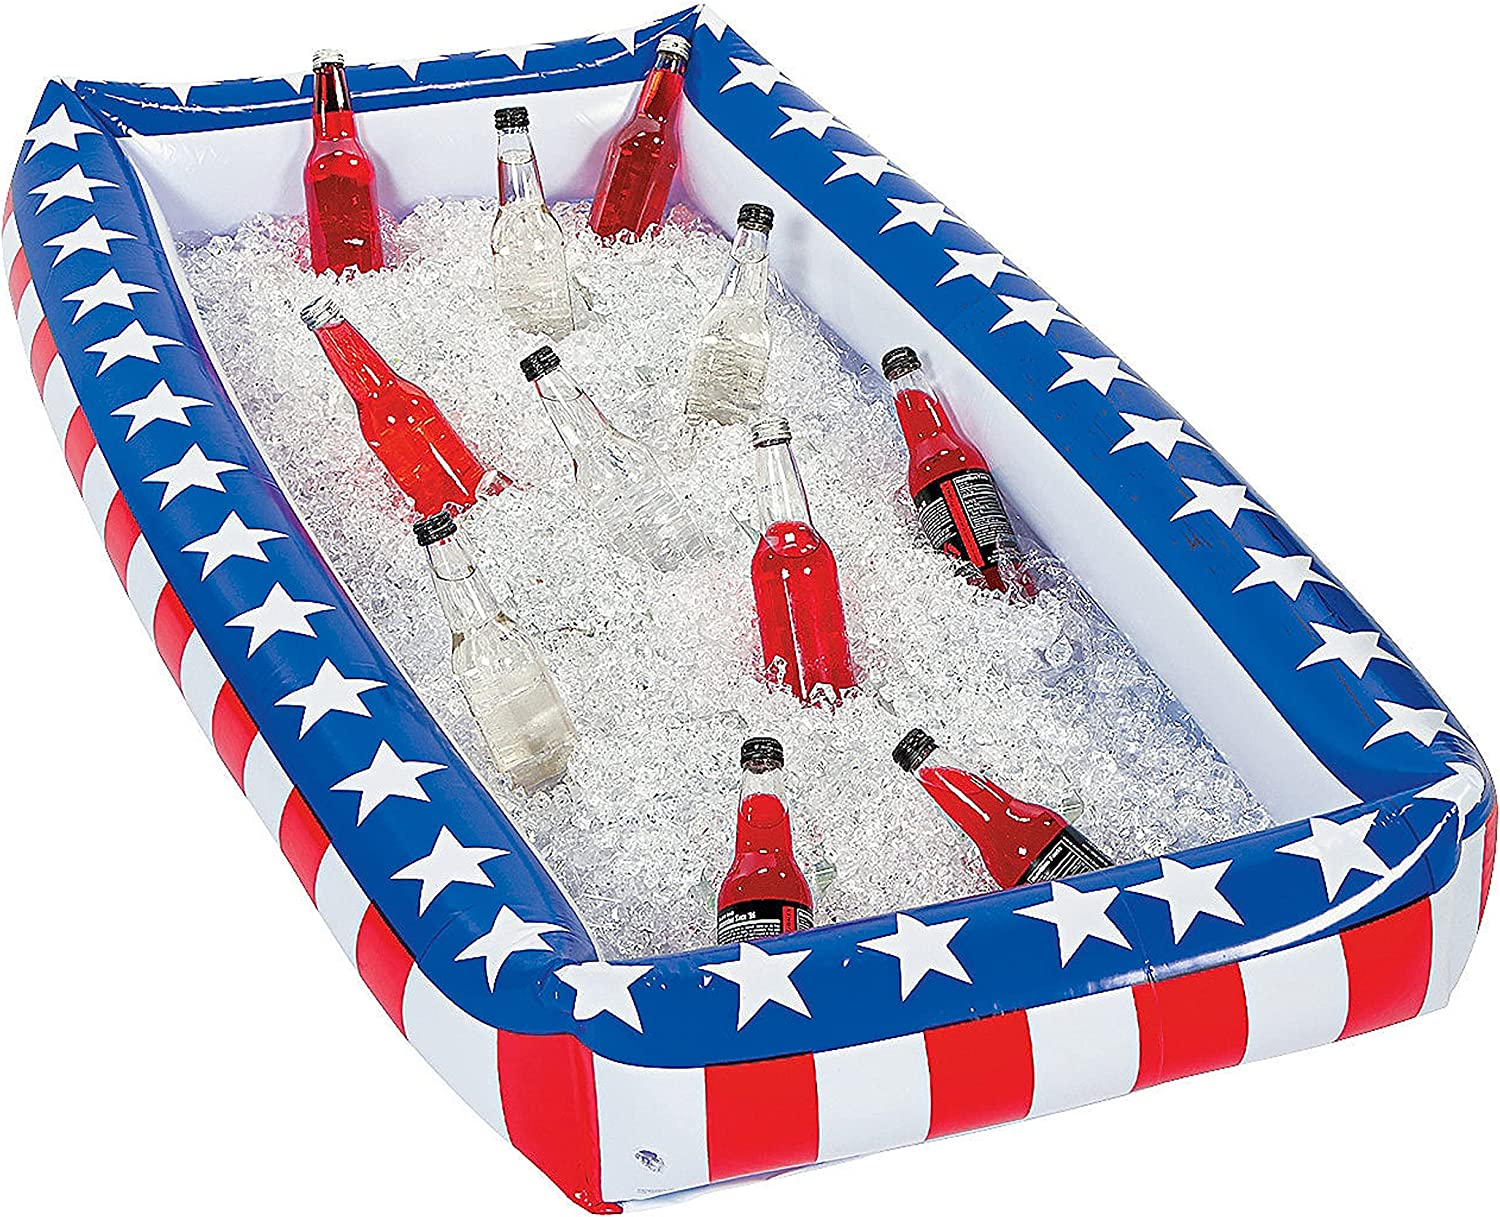 Patriotic Inflatable Serving Bar Ice Buffet Cooler Salad Serving Trays - 4th of July Party Supplies, Independence Day Fourth of July Party BBQ Cooler Indoor Outdoor Picnic Pool Party by 4E's Novelty